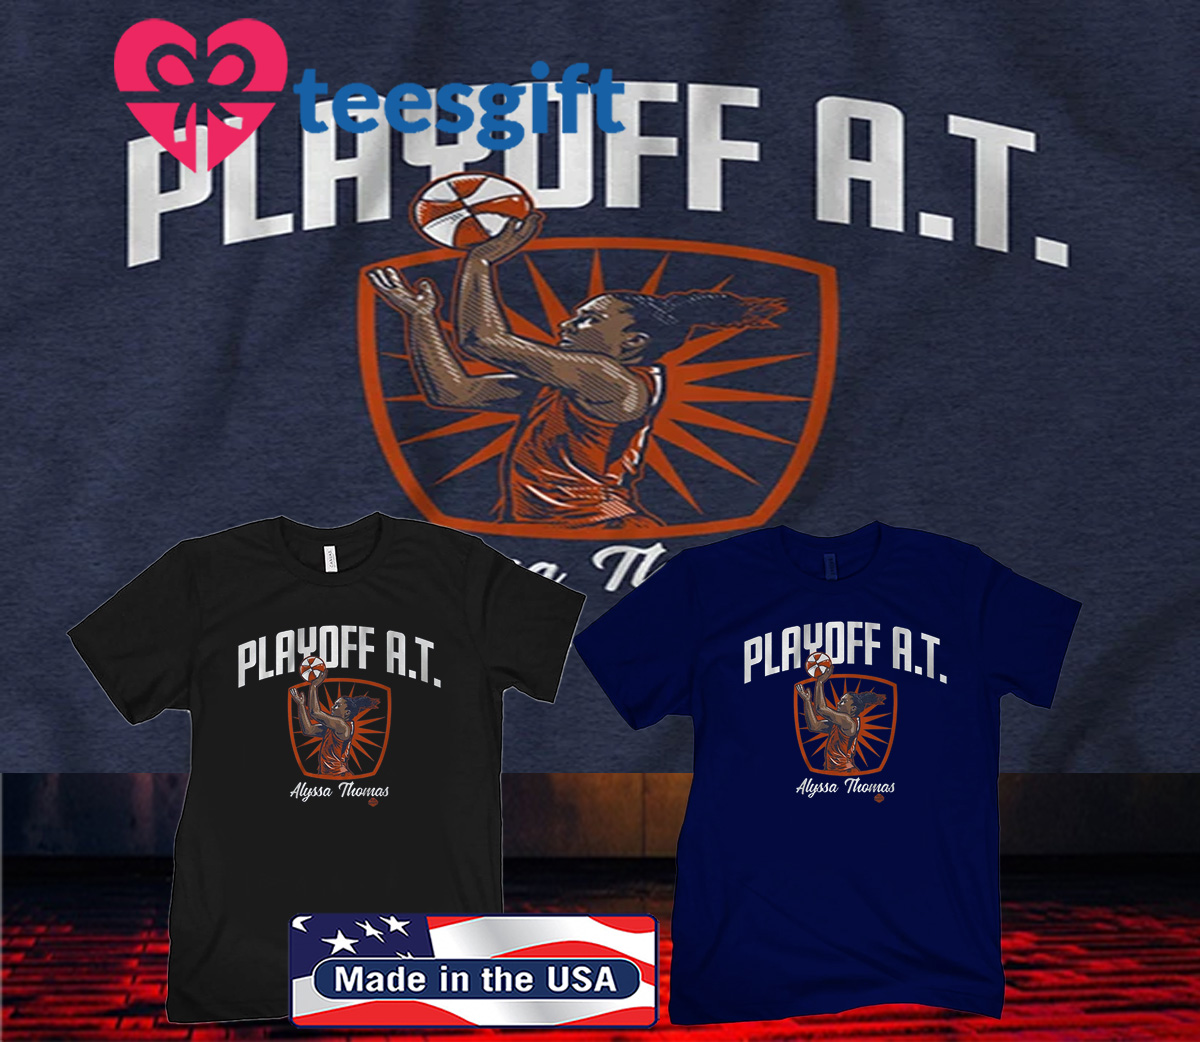 Playoff AT Alyssa Thomas 2020 Shirt